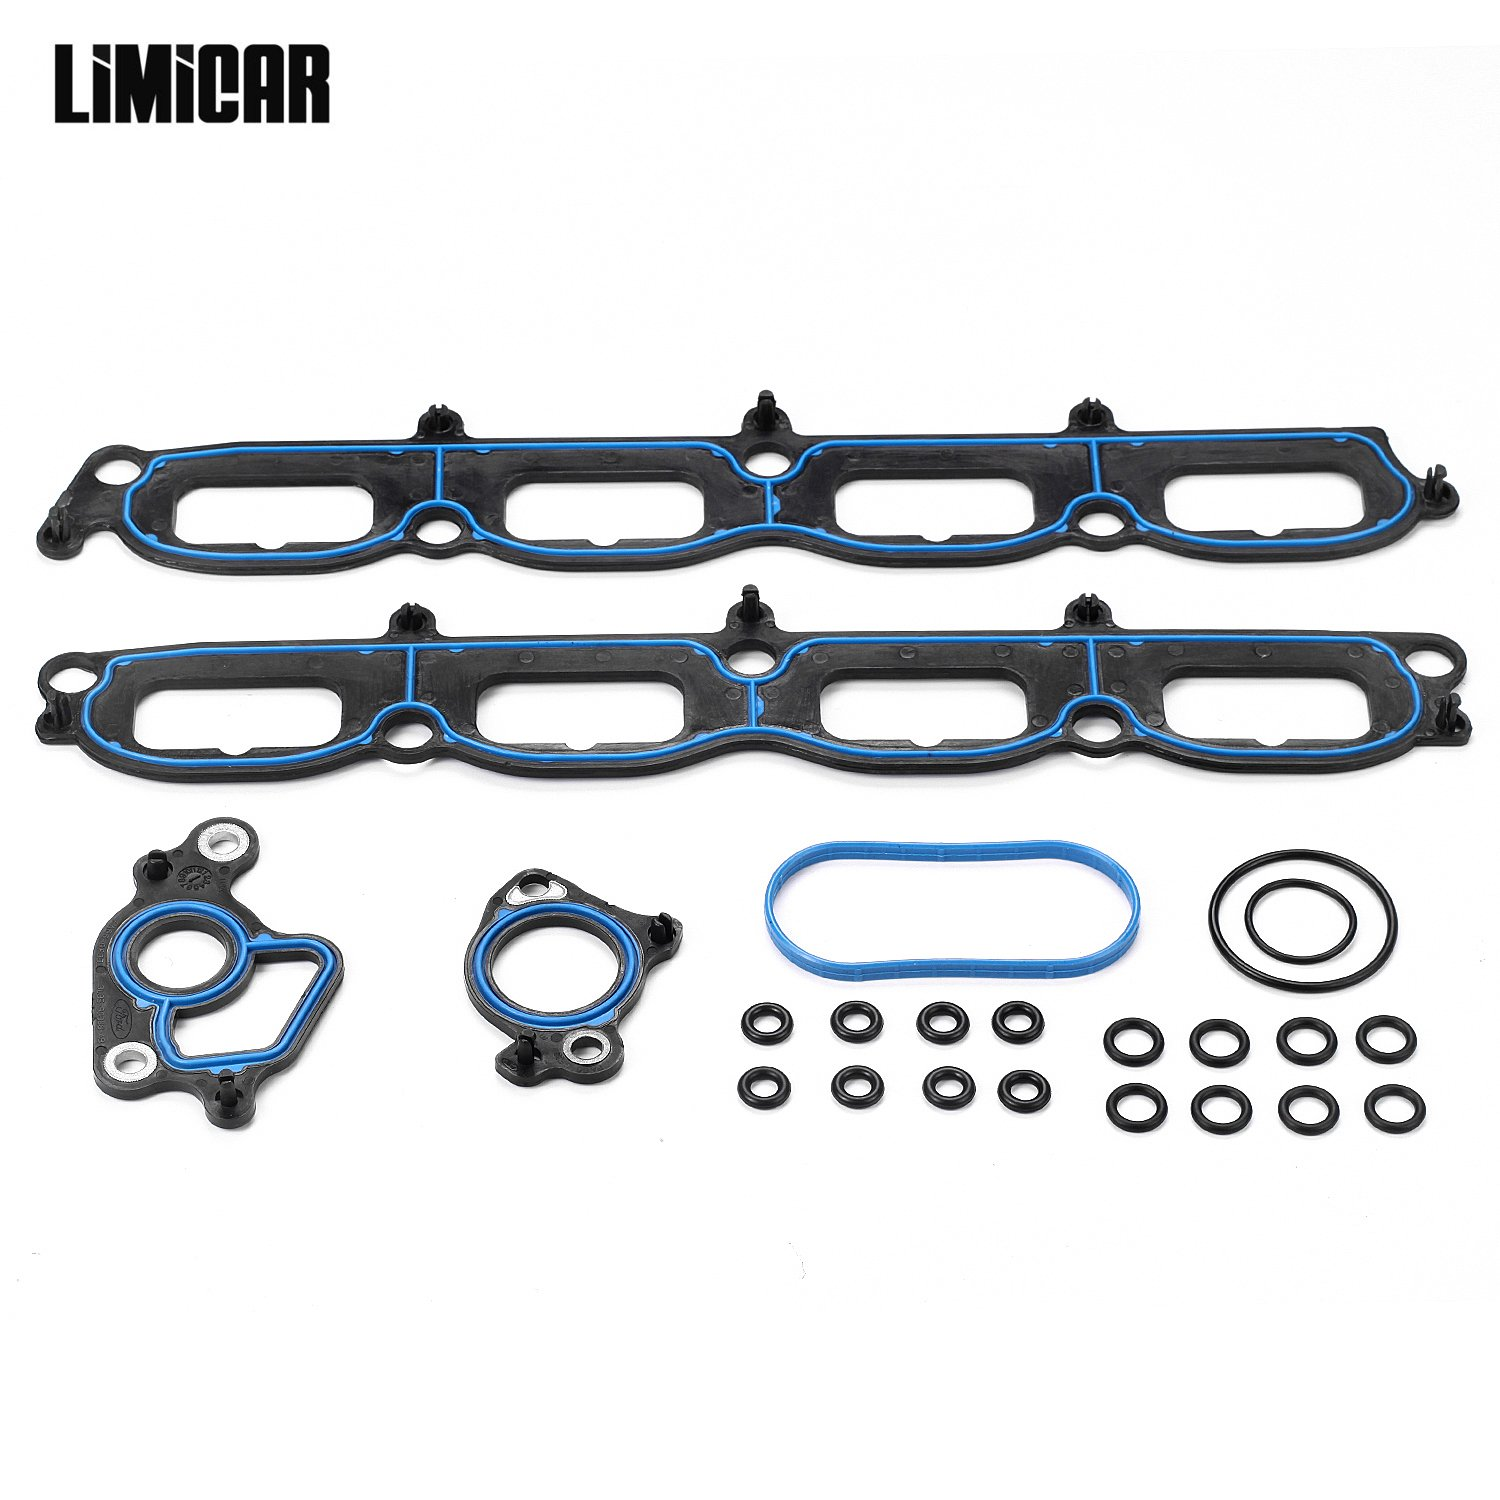 LIMICAR Intake Manifold Gasket Set For 2005-2012 Ford Expedition 2004-2010 Ford F-150 2006-2008 Lincoln Mark LT 2005-2012 Lincoln Navigator 5.4L SOHC Vin 5 V MS96696